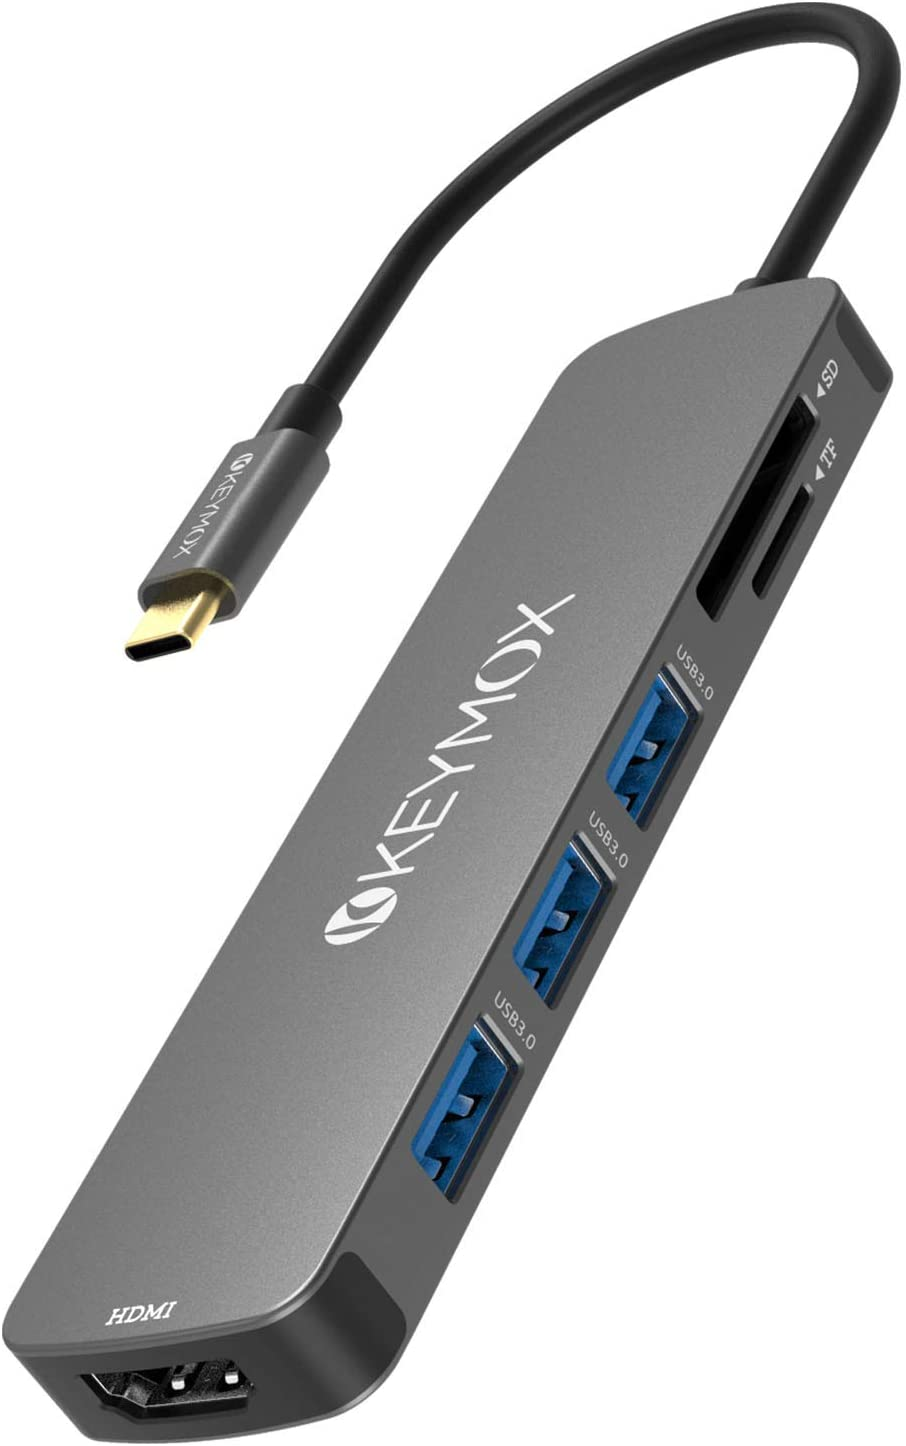 KEYMOX USB C Hub HDMI, MacBook Pro Multiport Adapter USB C Dongle, 4K USB-C to HDMI, 3 USB 3.0 Ports and SD/TF Cards Reader for MacBook Air Pro ChromeBook Pixel Matebook XPS More Type C Devices